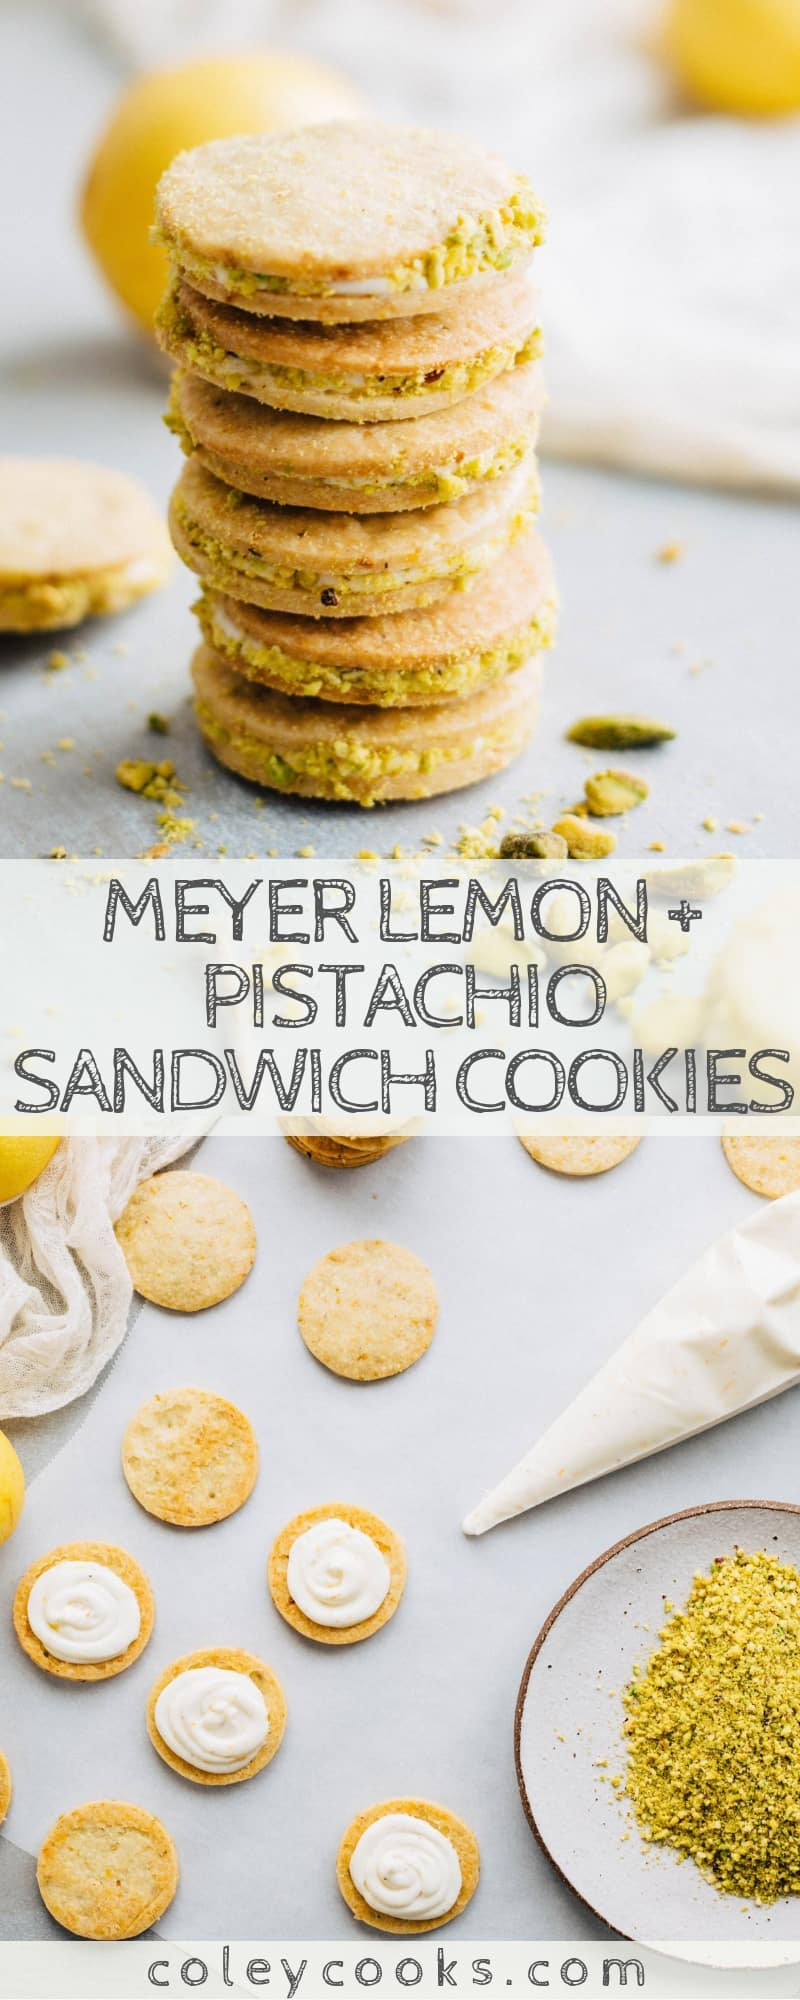 Meyer Lemon + Pistachio Sandwich Cookies | Beautiful tart, and delicious Christmas cookies! Pistachio shortbread sandwiched with meyer lemon buttercream. Amazing! #christmas #cookie #recipe #sandwich #meyerlemon #pistachio #shortbread | ColeyCooks.com